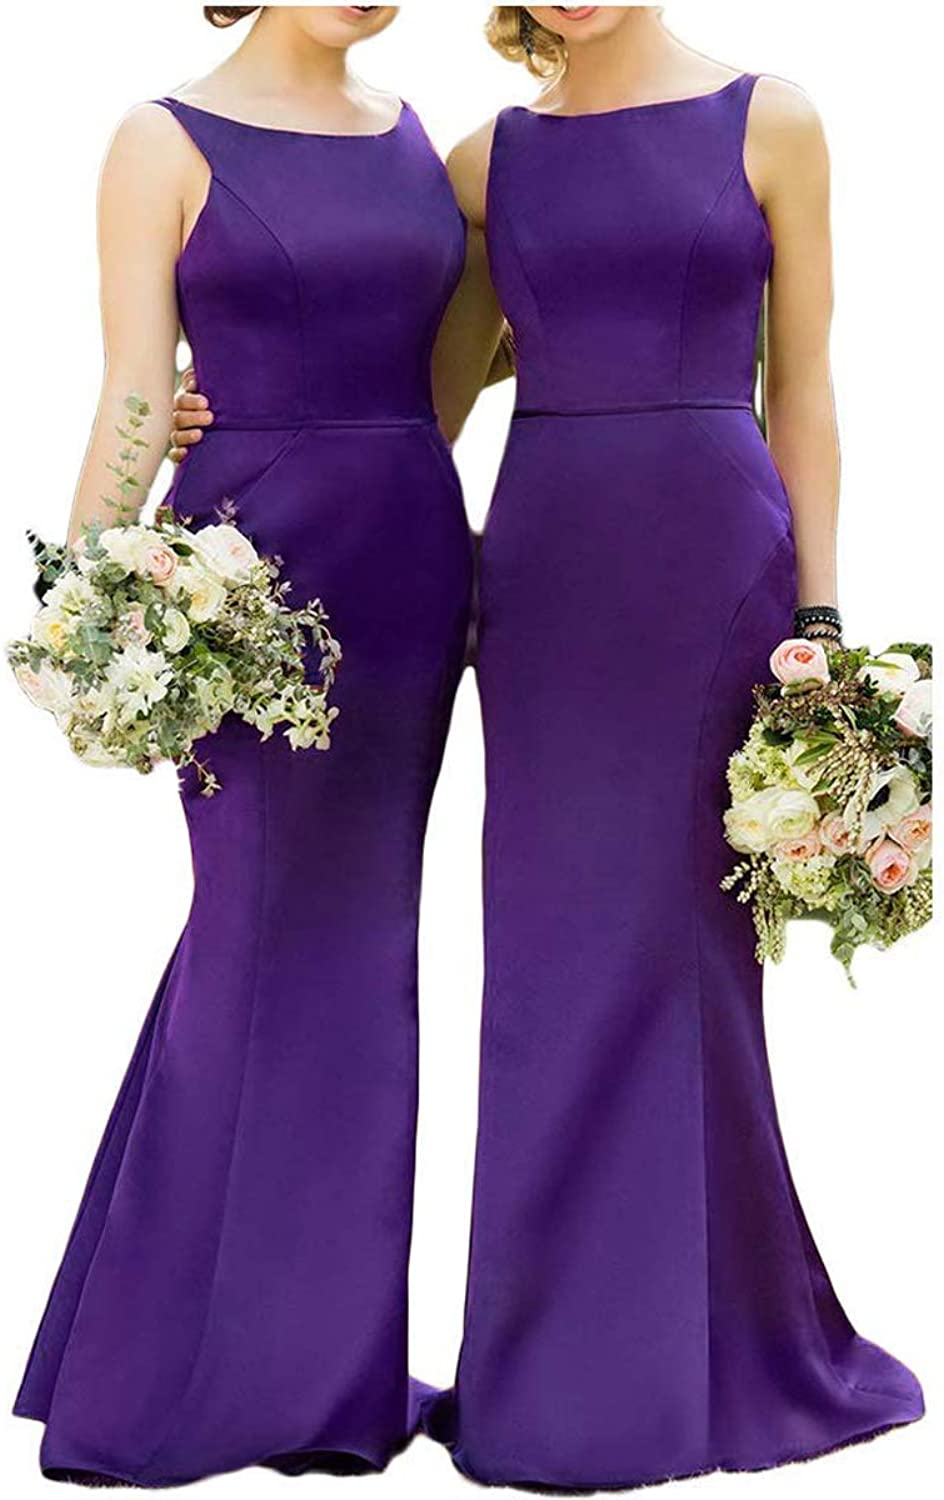 Ruisha Women Satin Mermaid Sexy Bridesmaid Dresses Long Formal Prom Dresses Party Gown RS0259